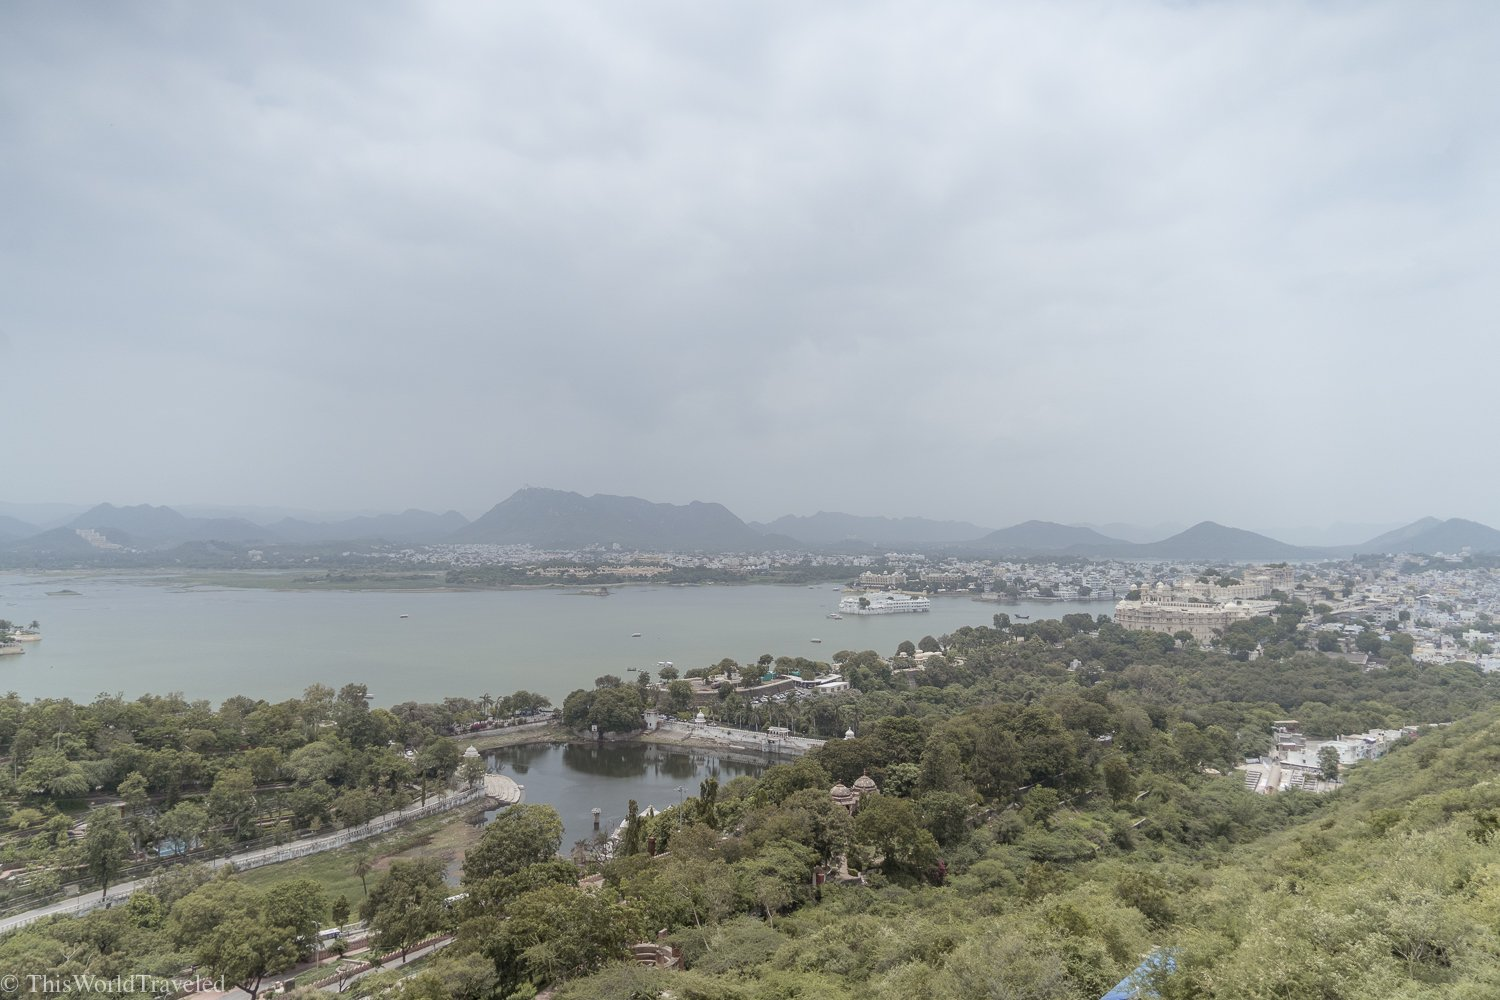 Bird's eye view of Lake Pichola from the Udaipur ropeway